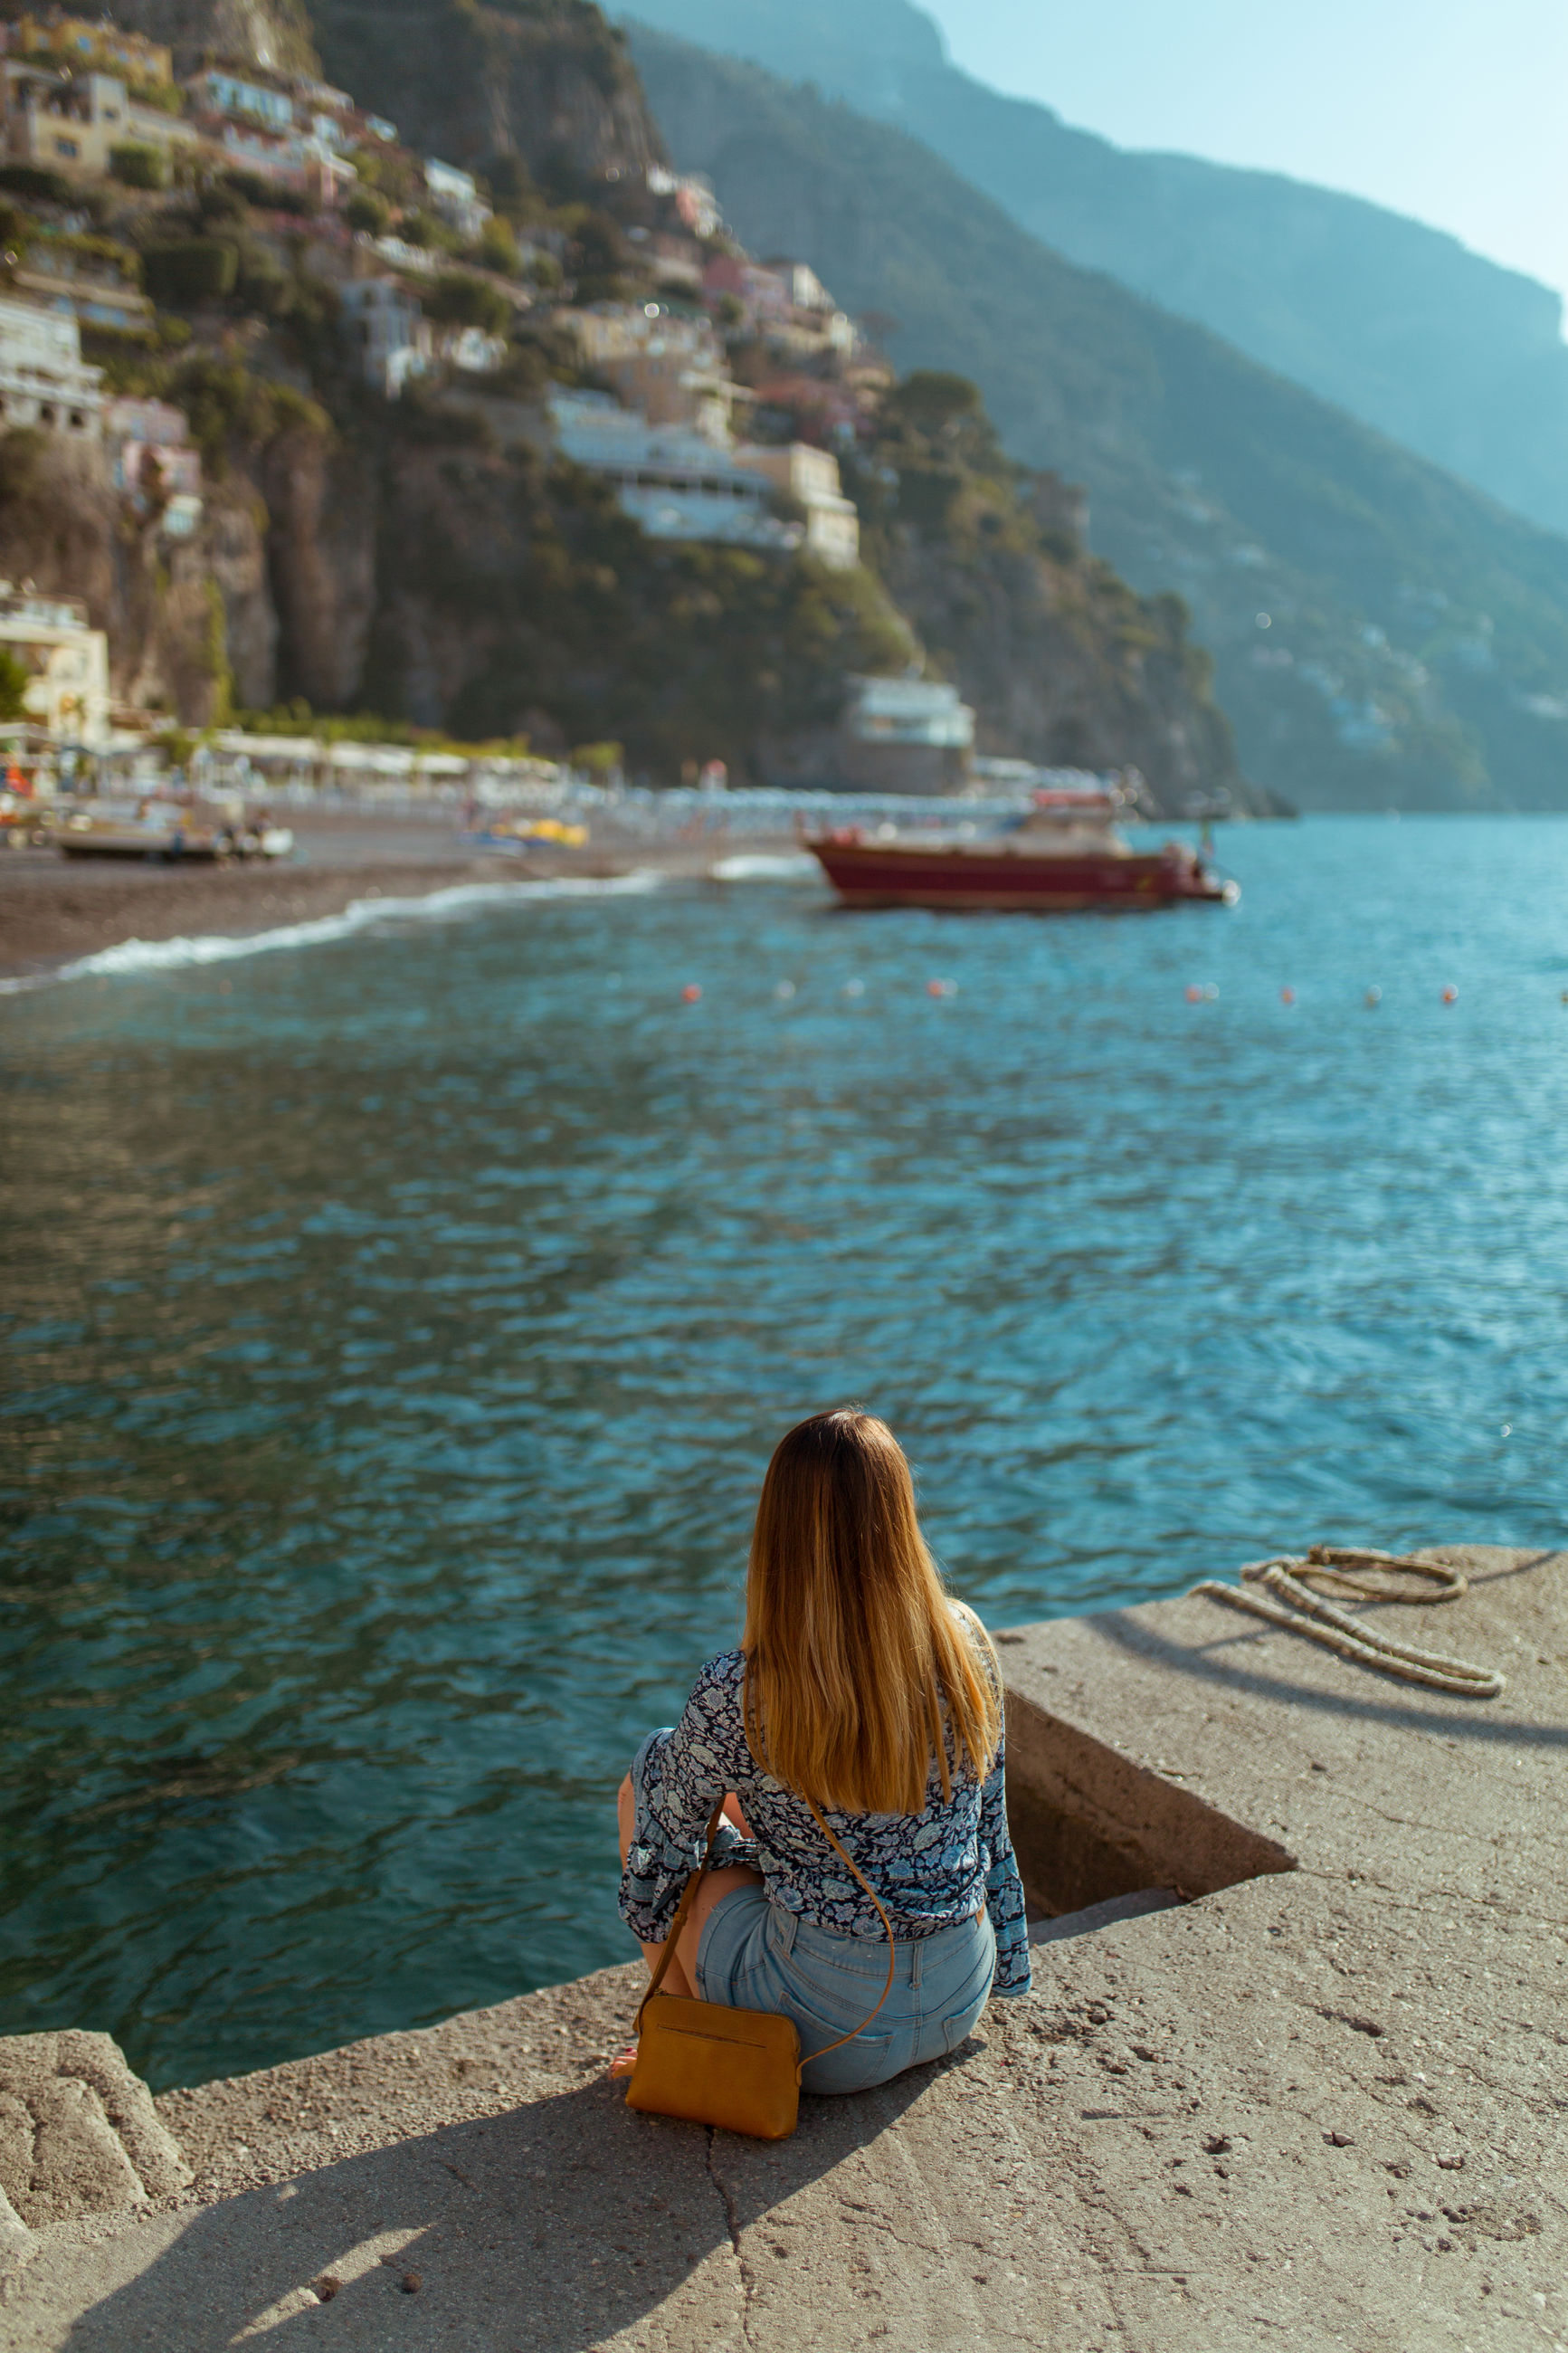 water, one person, sitting, mountain, leisure activity, rear view, real people, lifestyles, women, day, beauty in nature, nature, scenics - nature, adult, sea, relaxation, hair, casual clothing, tranquility, looking at view, outdoors, mountain range, hairstyle